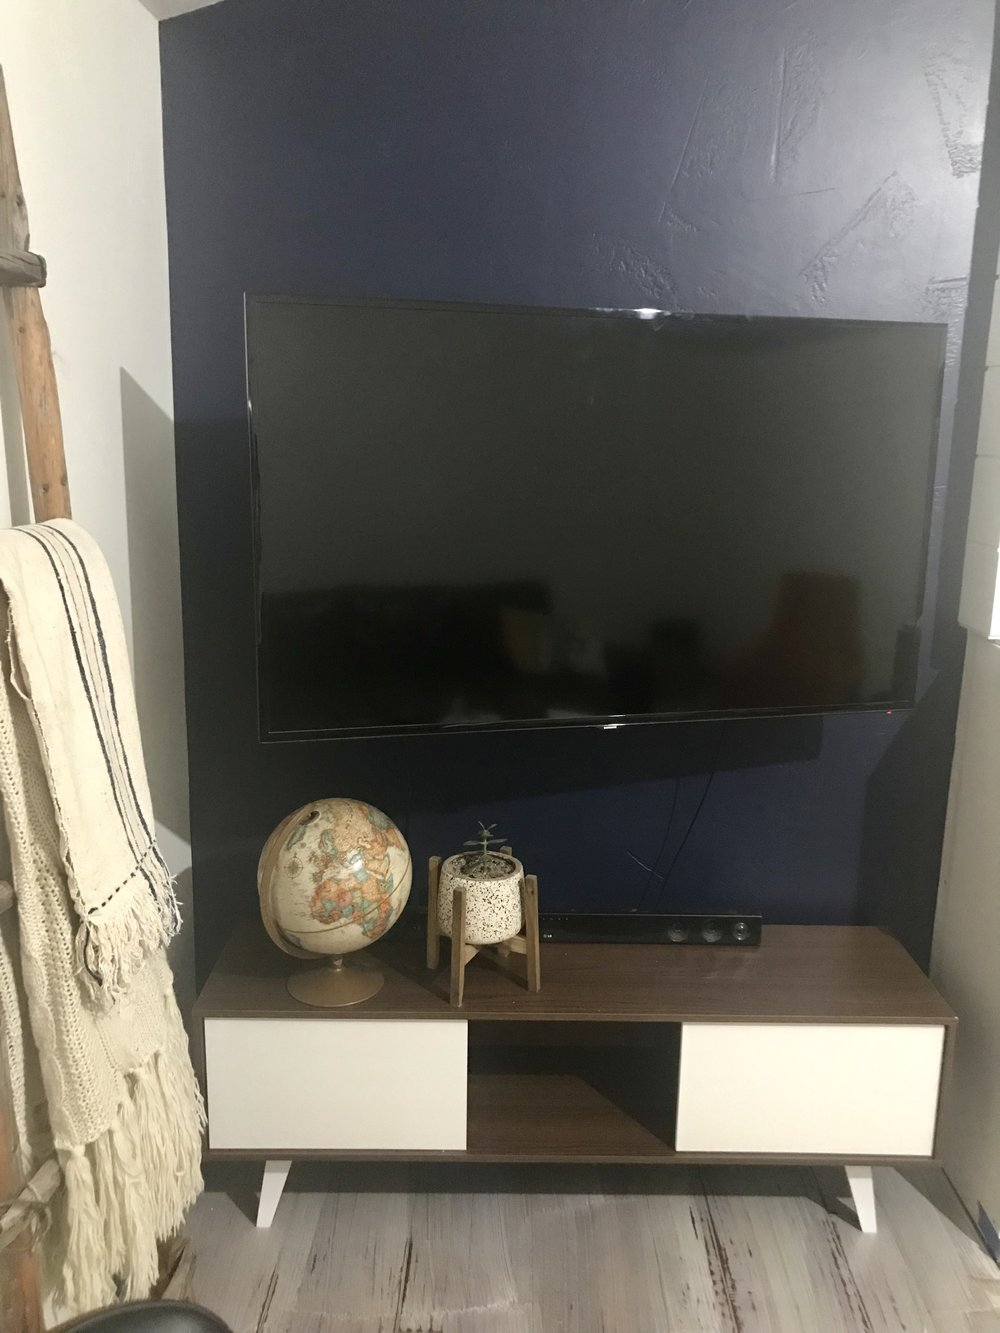 I ordered this tv console from Wayfair. It cost me a whopping $167.99. Not expensive at all. The console I wanted was $799. I used it as my inspiration. Does anyone else do this? I knew the console was going to come in a million pieces. And the quality, well let's just say it's not an heirloom piece. It came together fairly easy easy for my husband. I would have added a photo of him assembling it. But I like to show the world a better side of us. Giving me the bird with one hand and a screw driver in the other. You get the idea. I tell him he shouldn't be so handy. You will get to see more of his handy work in future posts.  I wasn't concerned about the quality. This was a form over function situation. The TV is mounted to the wall, I needed a piece of furniture to ground the Tv so it didn't look like it was floating. I guess it still does. But I needed something to hold the sound bar and hold my cool stuff. Bonus there is a little storage.